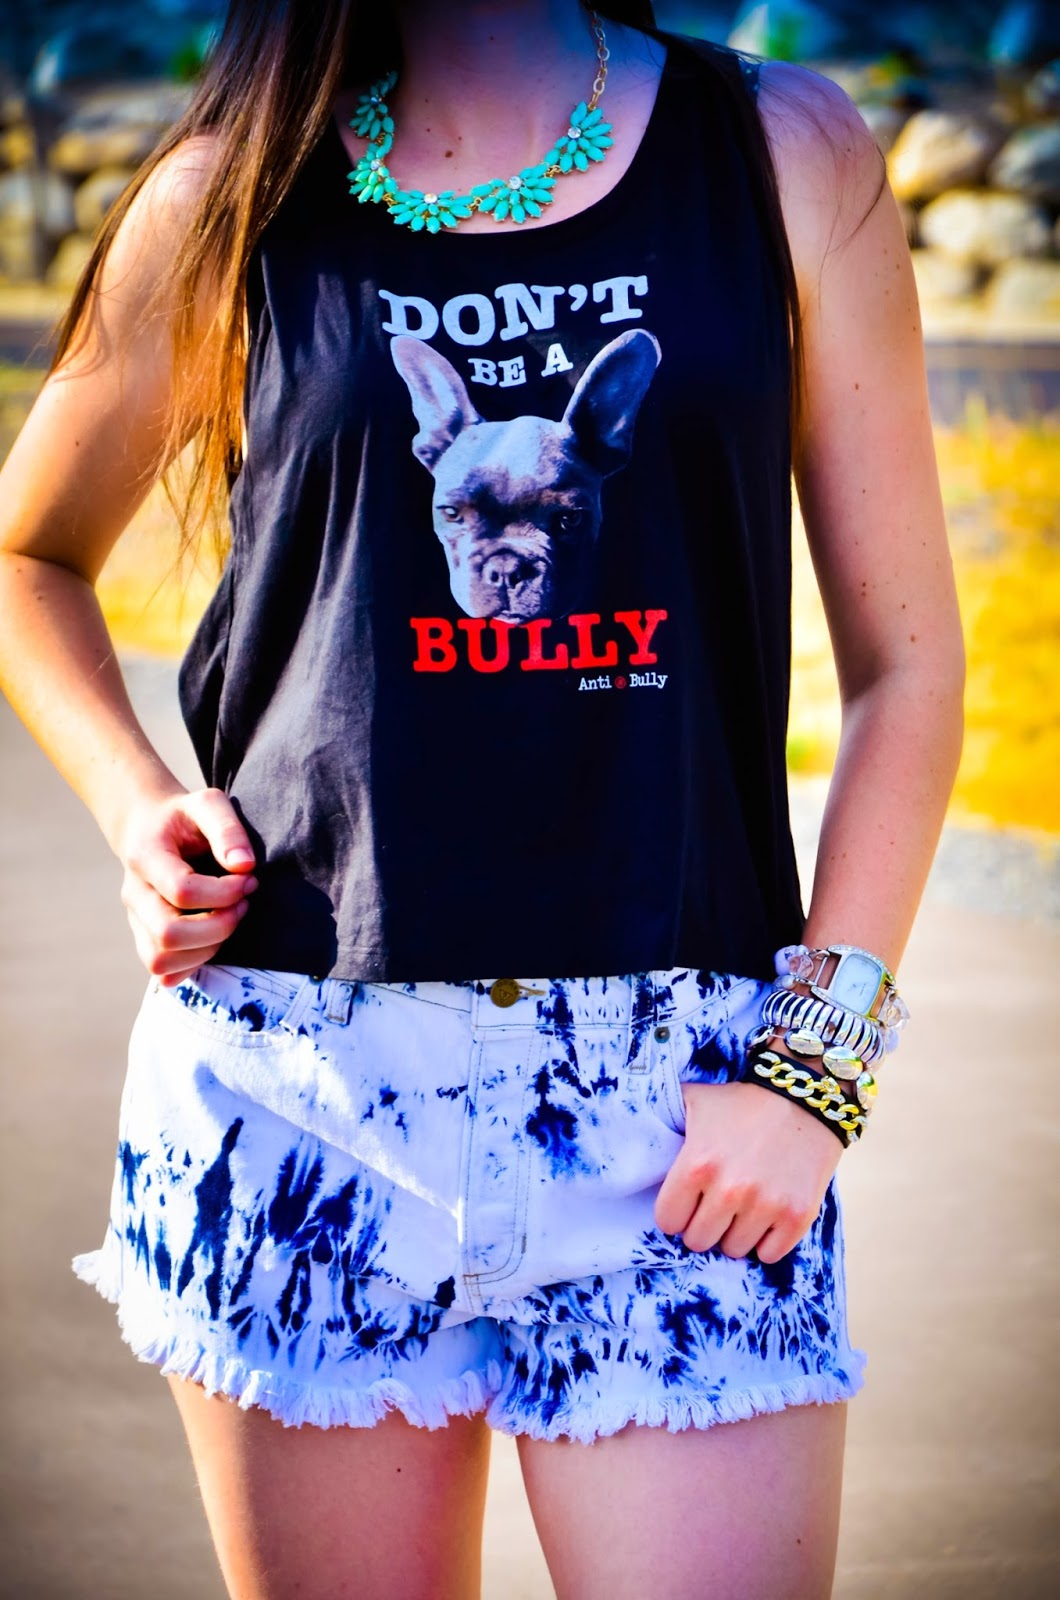 short shorts, black five shoes, black five, compassion brands, dont be a bully t-shirt, crop top, guess short shorts, bangles, arm candy, pretty, straight hair,